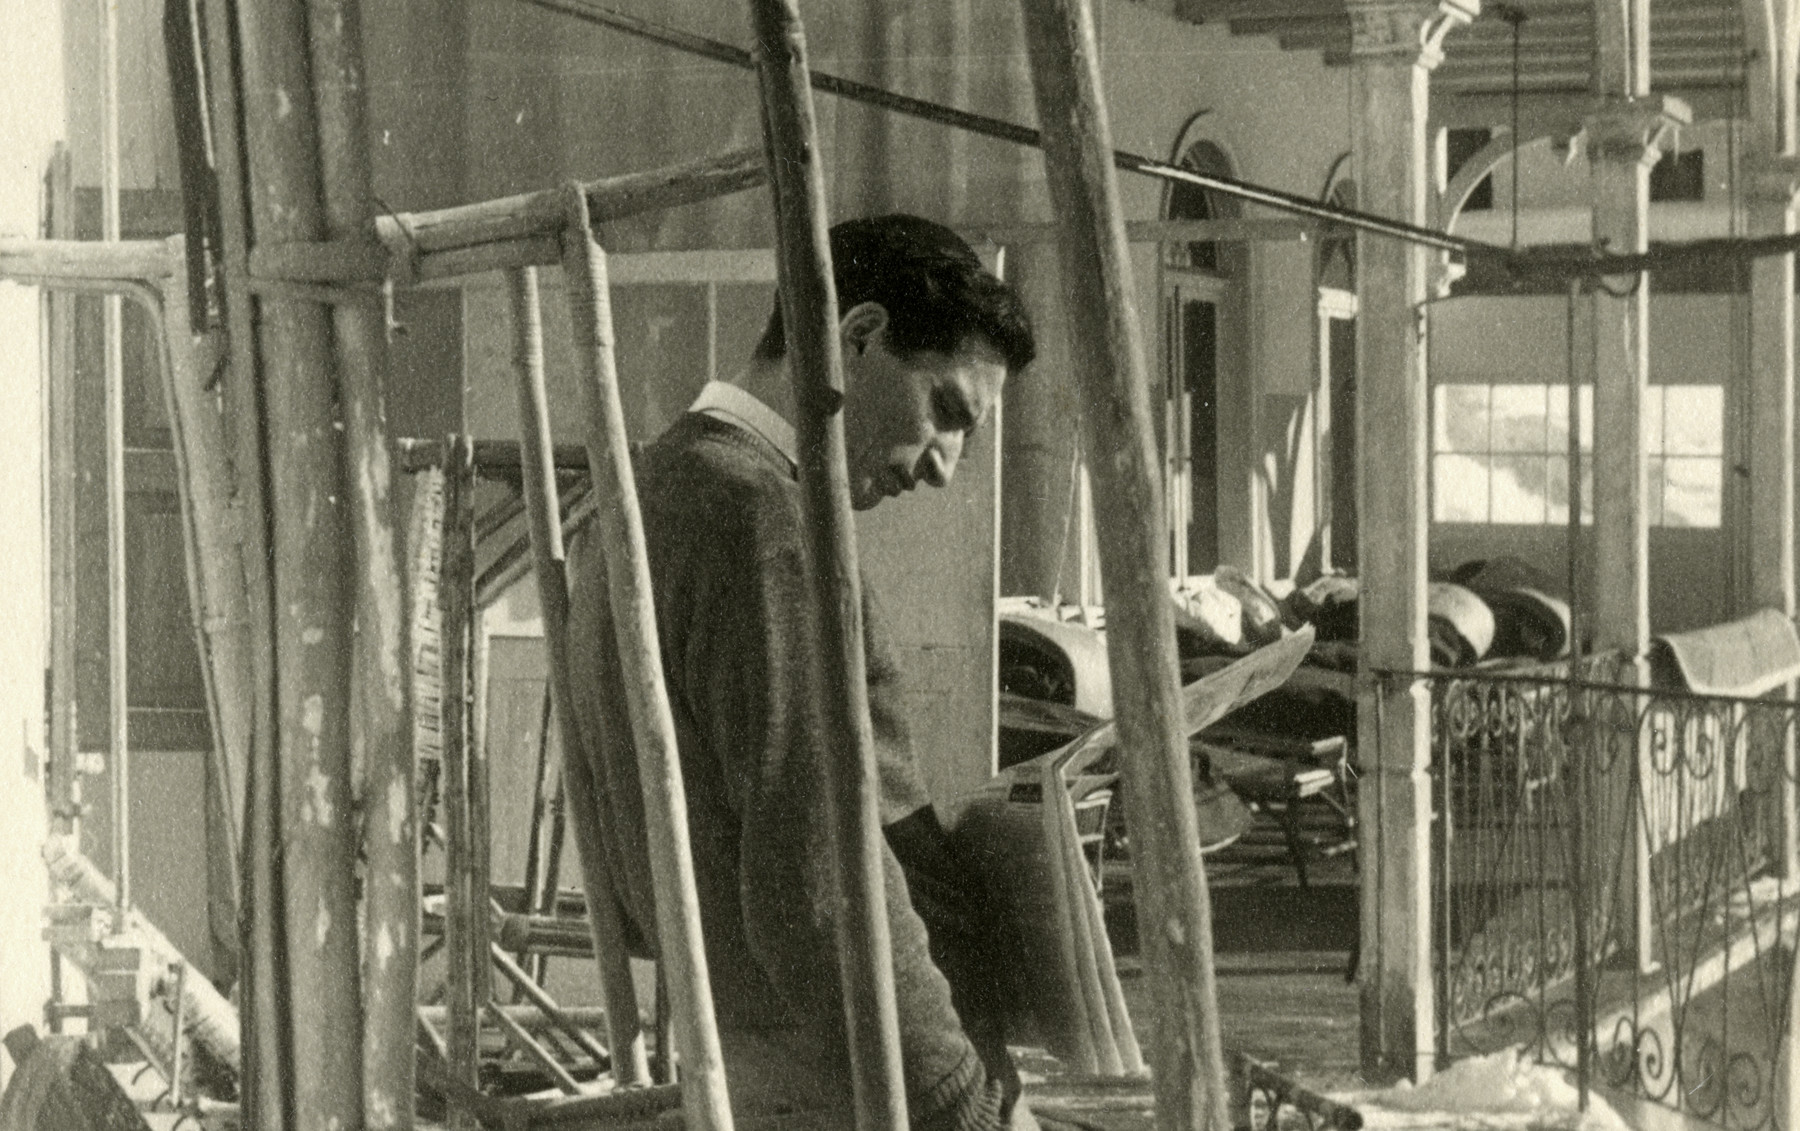 Zvi Grundman stands next to wooden chairs for sun care in the Beit Havraah sanatorium in Davos.